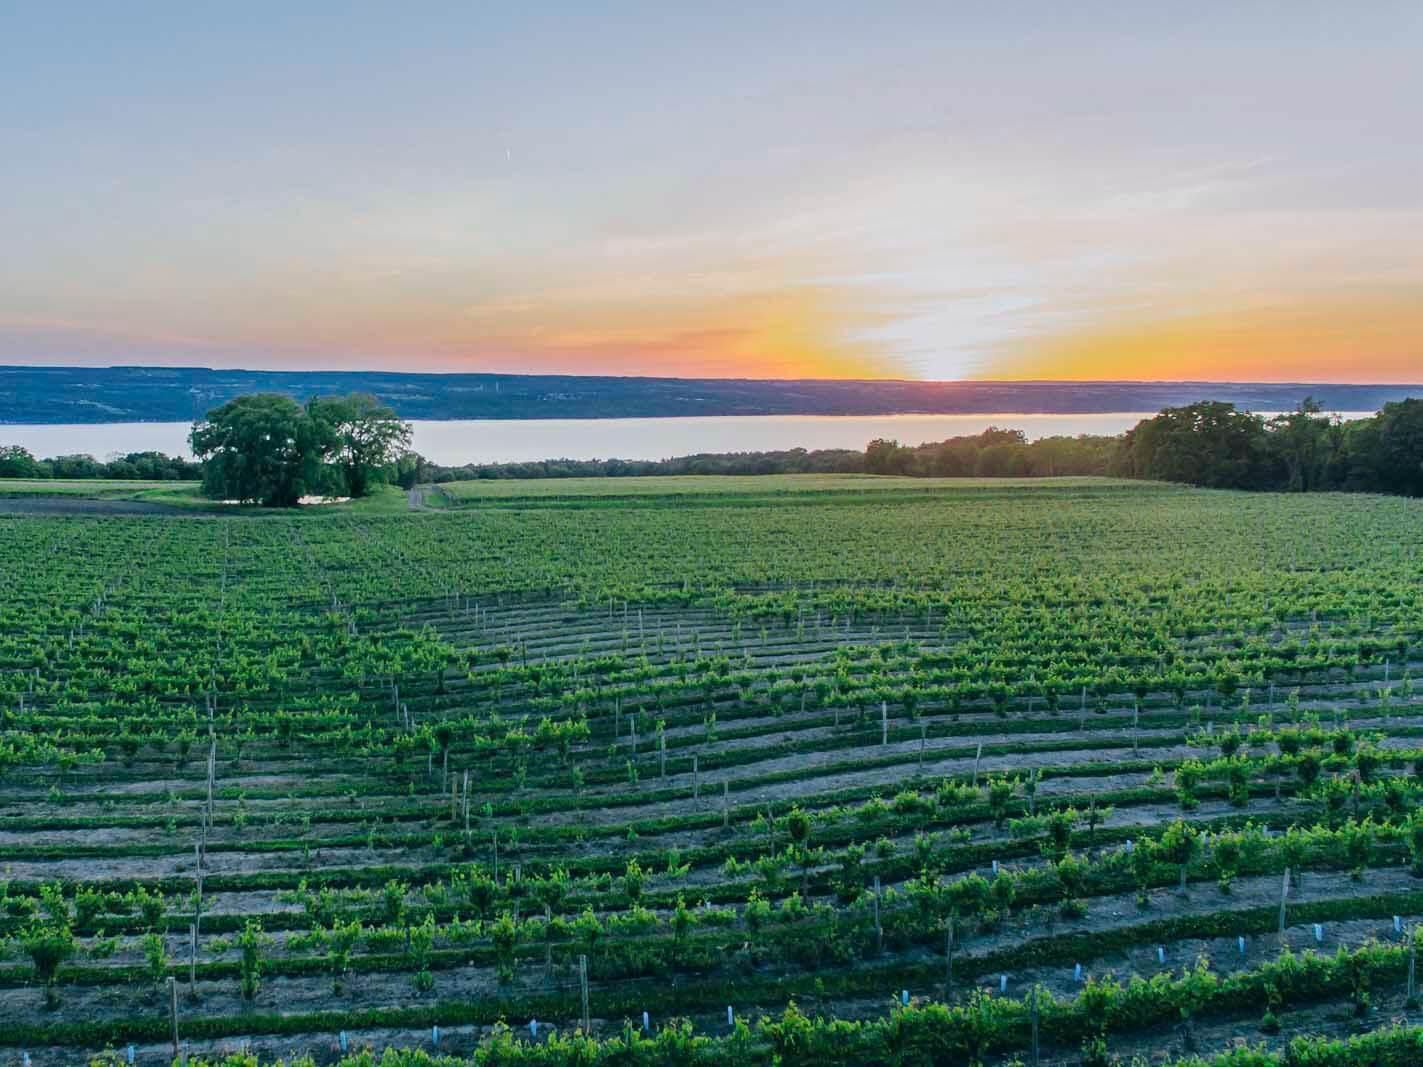 View of Seneca Lake and Vineyard in Lodi New York at Wagner Vineyards